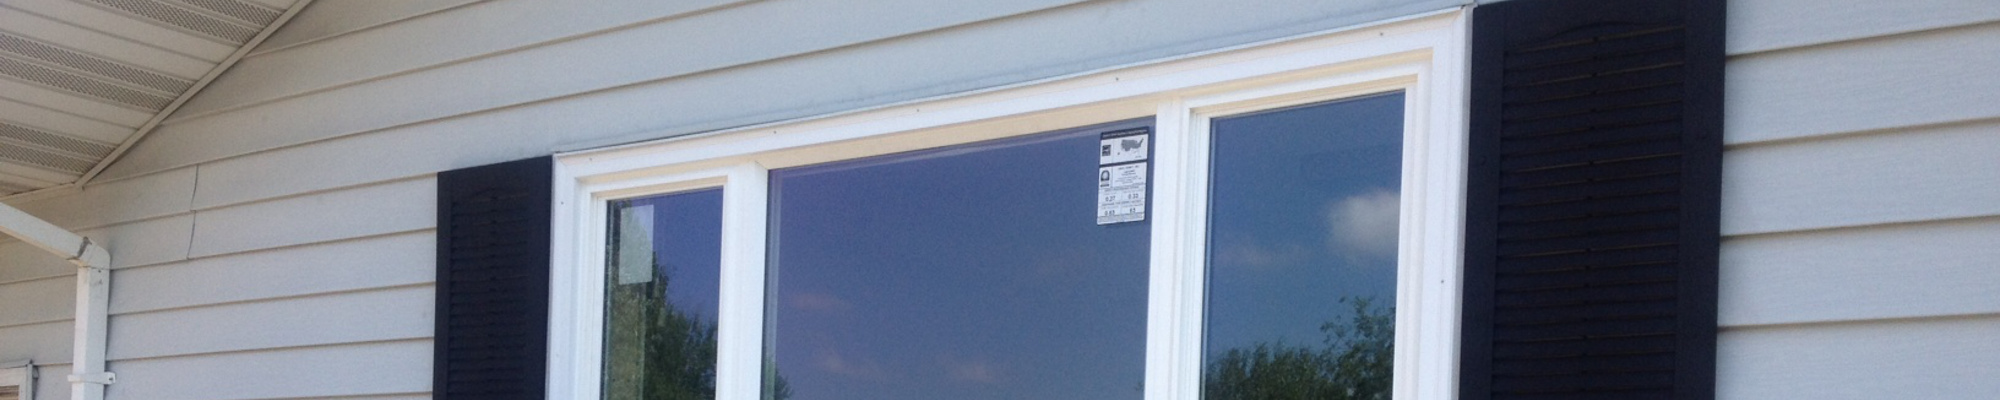 Replacement Windows in Stevens Point, WI